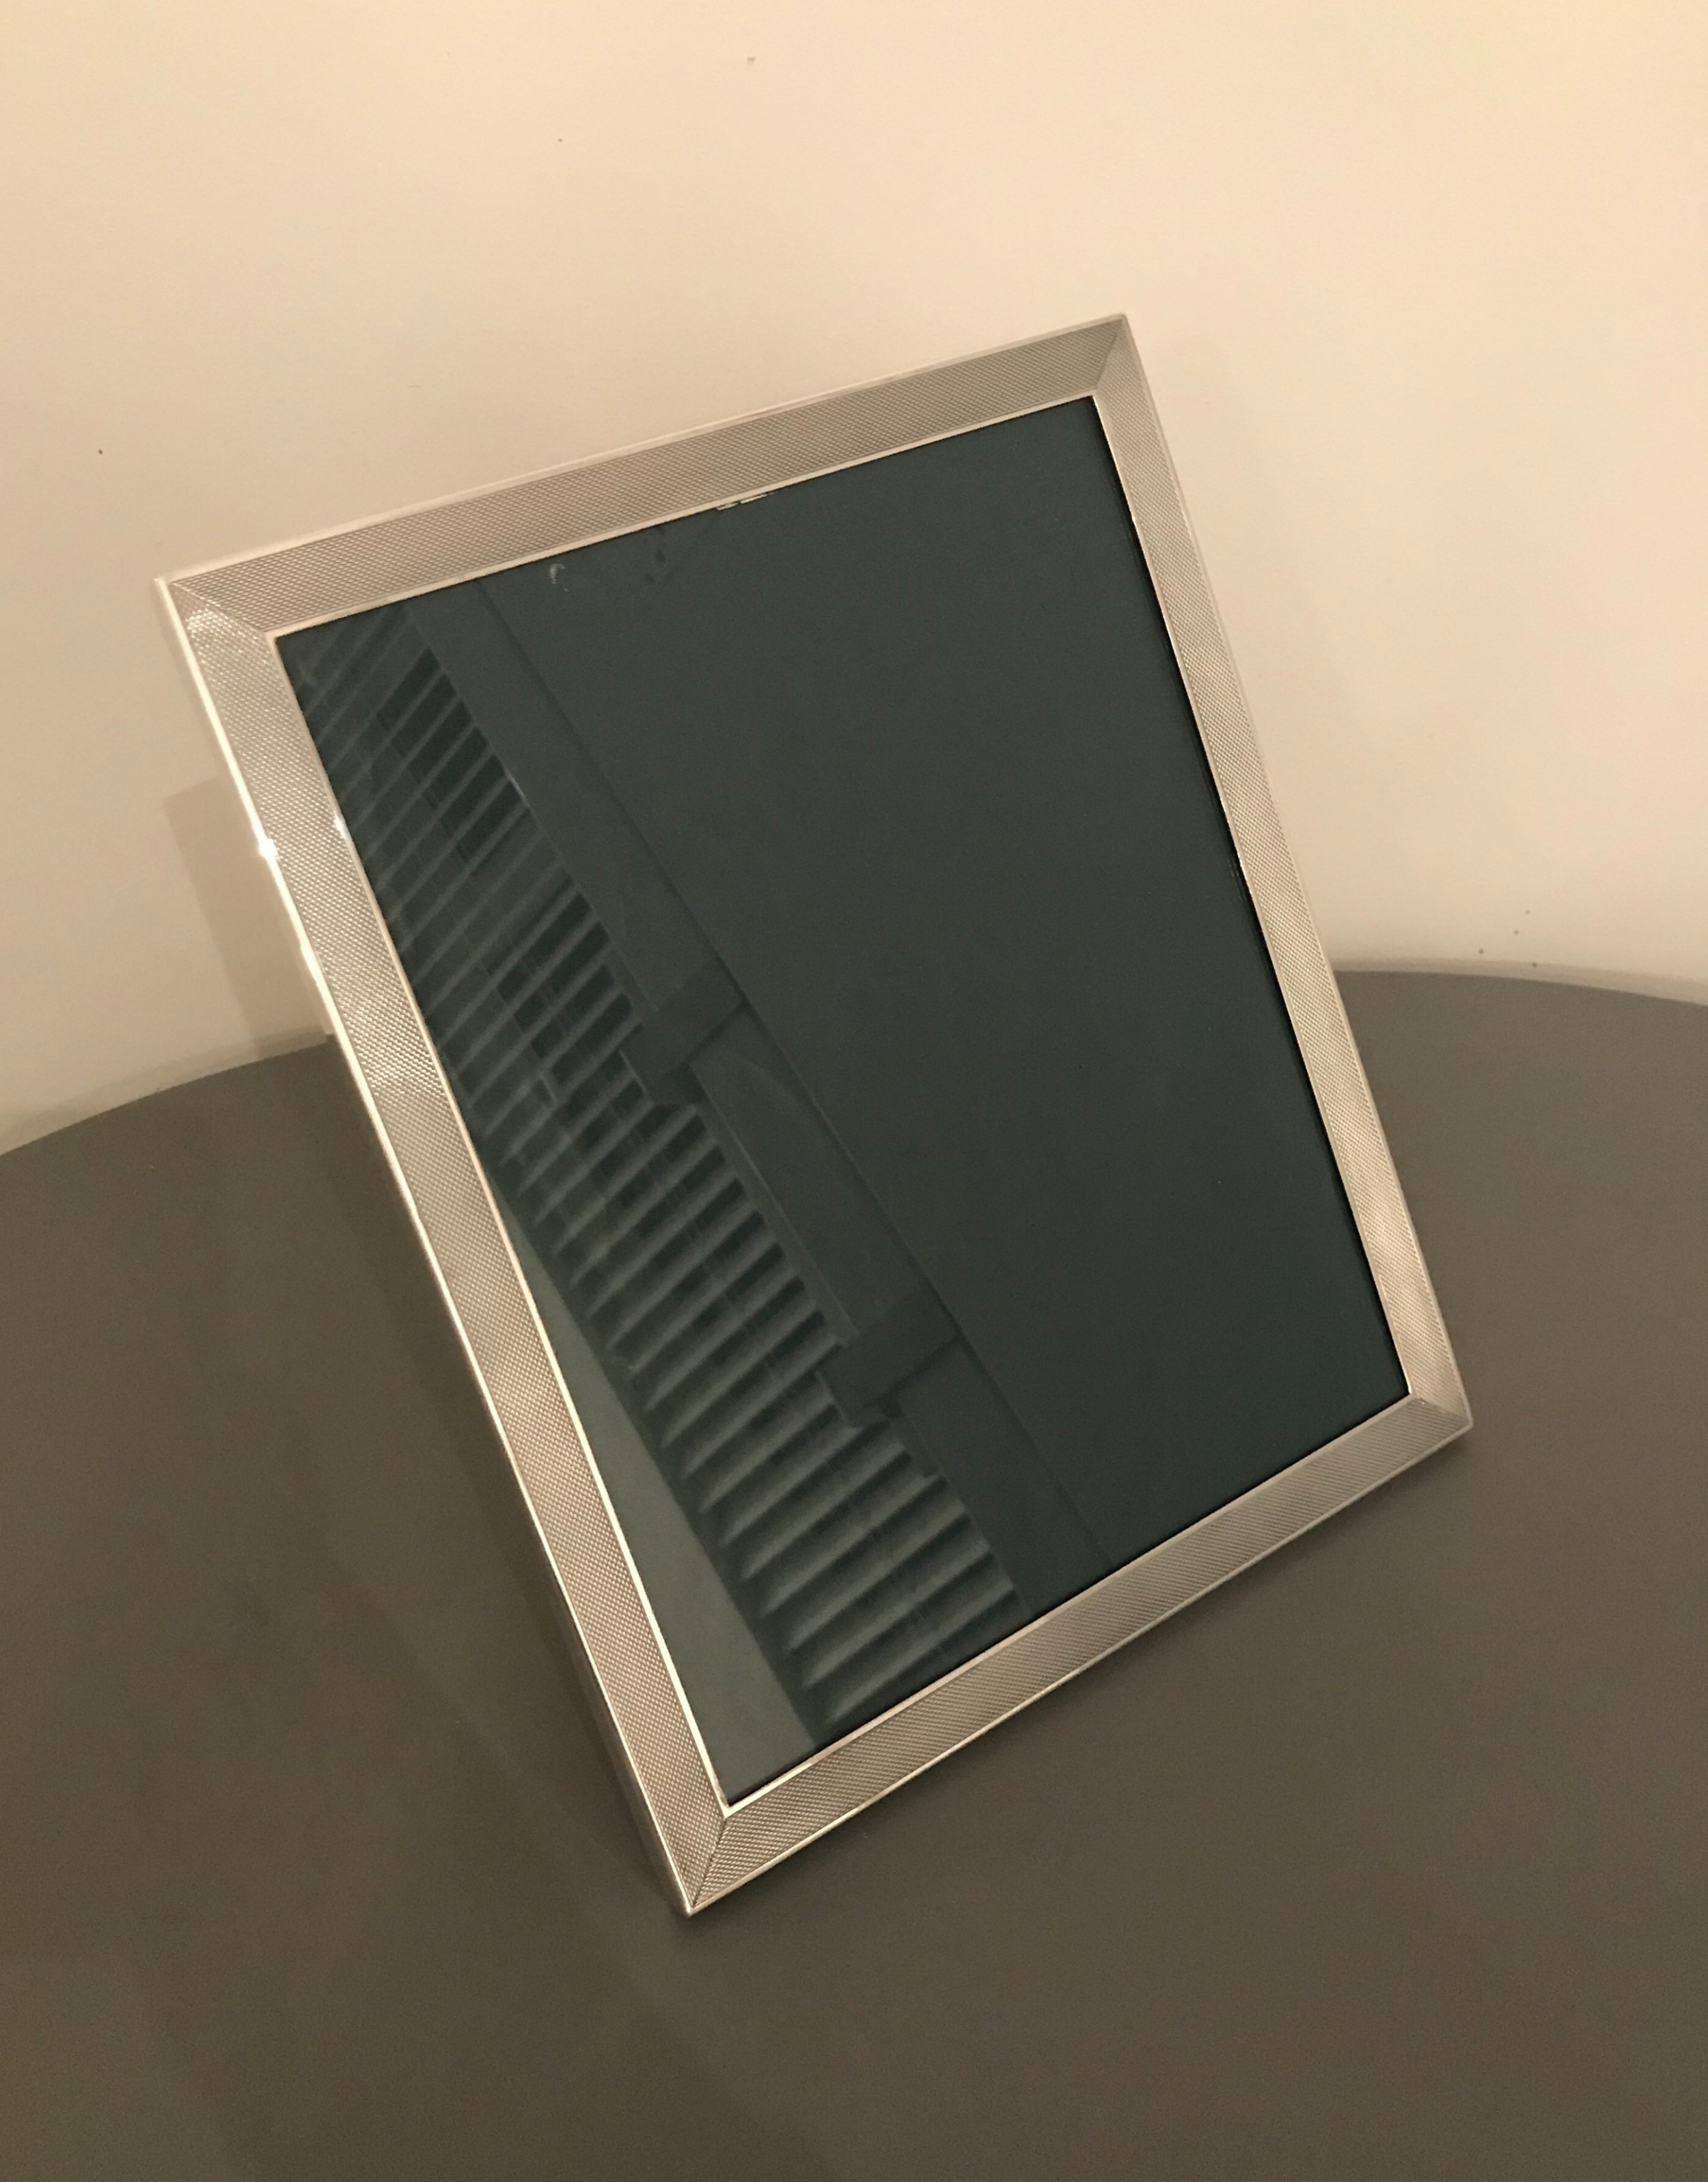 quality solid silver photograph frame